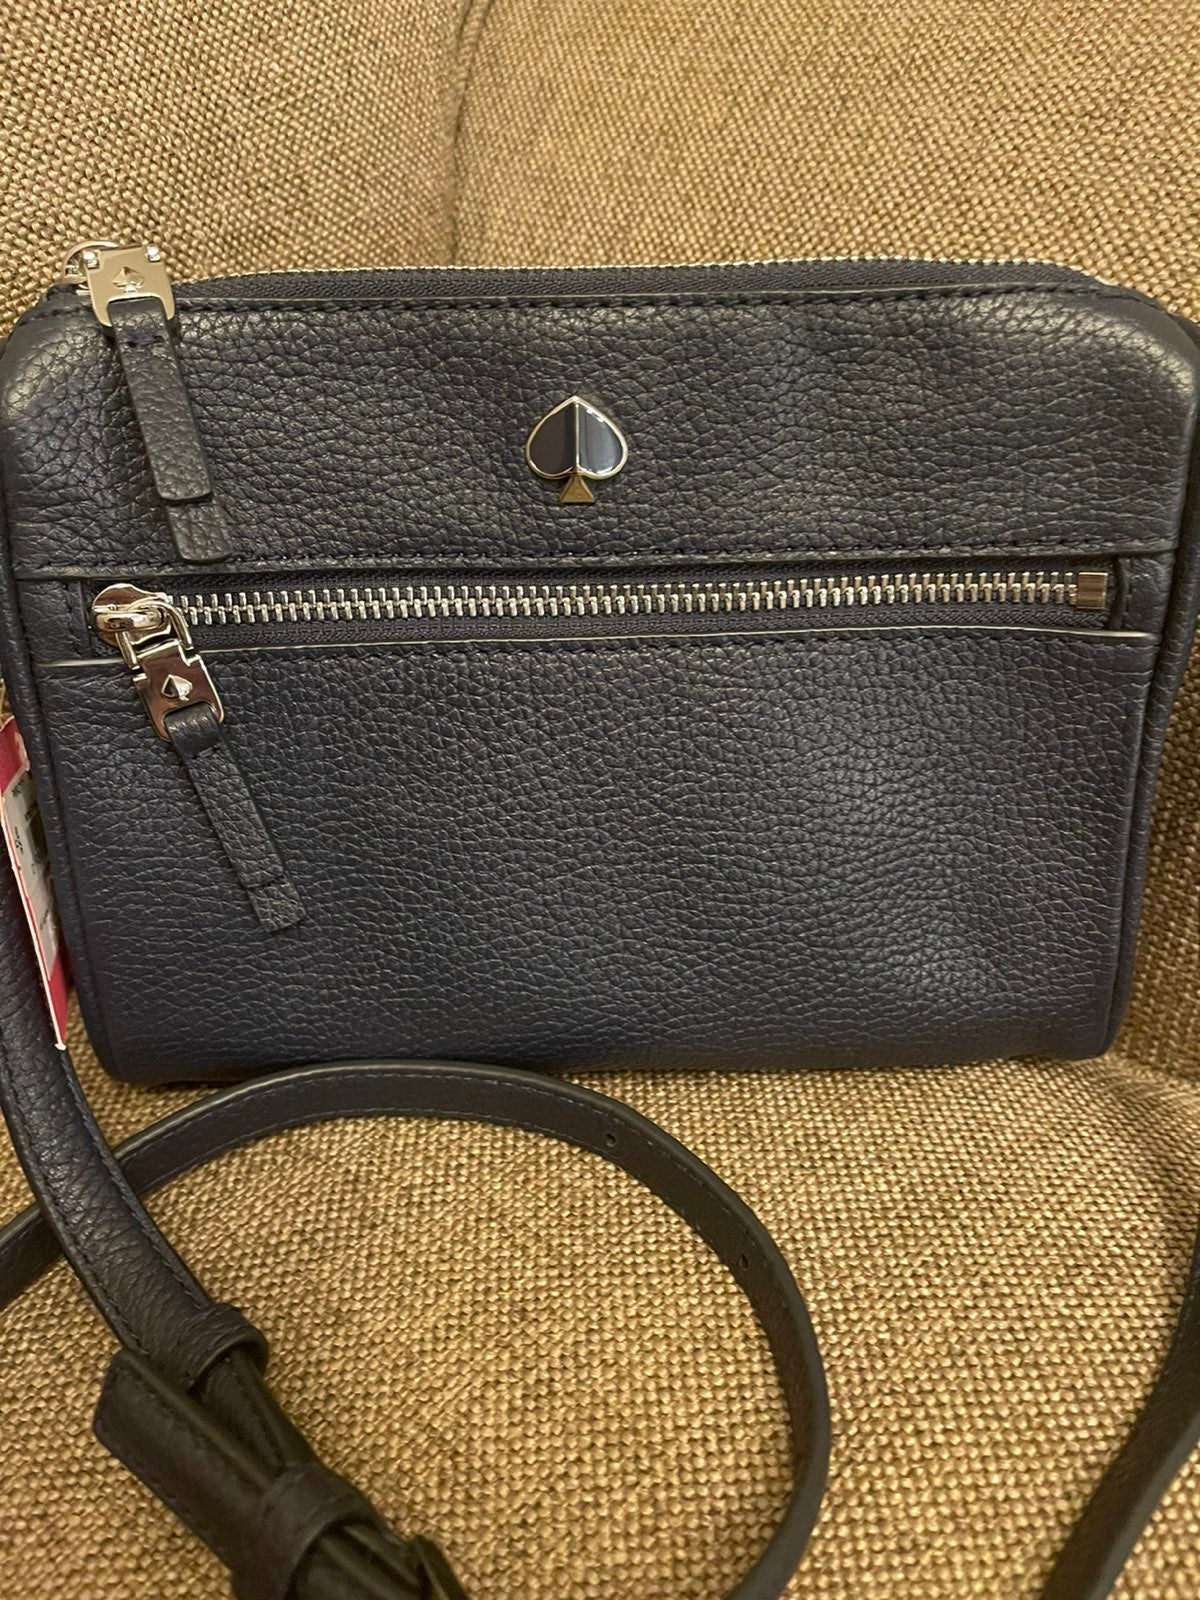 Kate Spade New York Blue